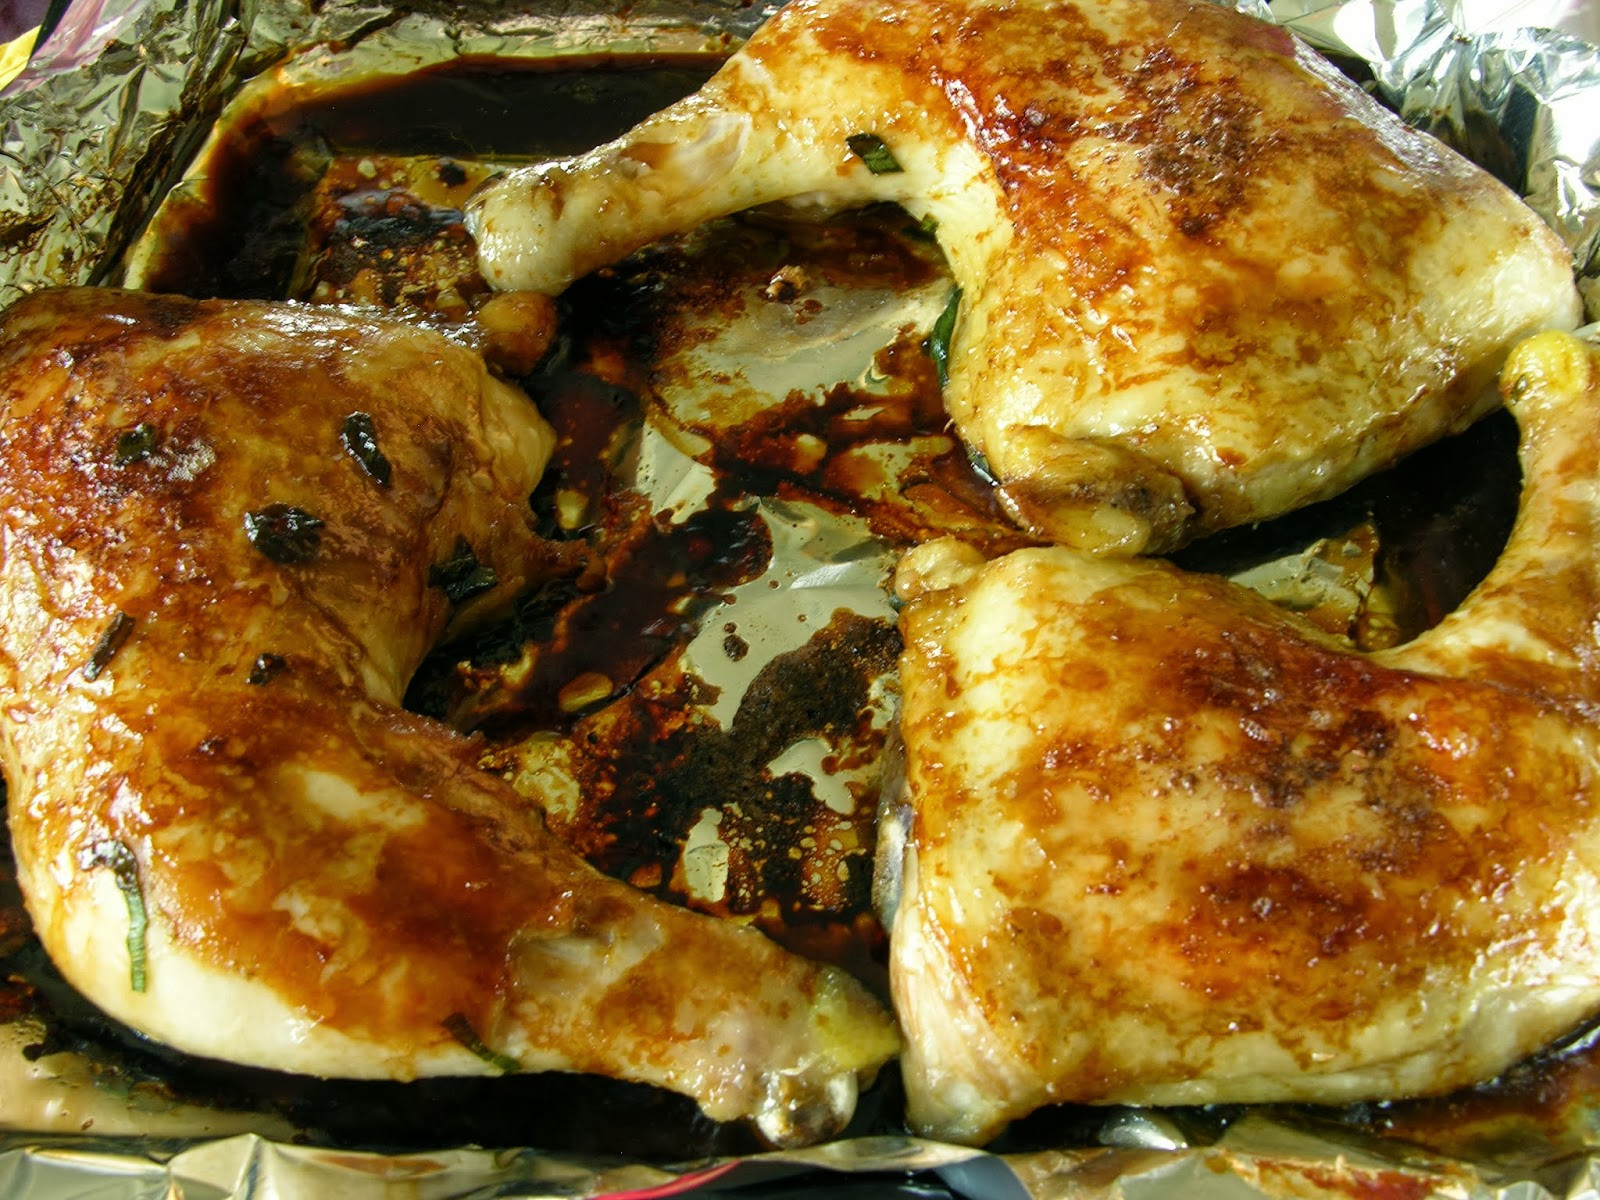 Oven Baked Chicken Quarters  Oven Roasted Chicken Leg Quarters 烤鸡大腿